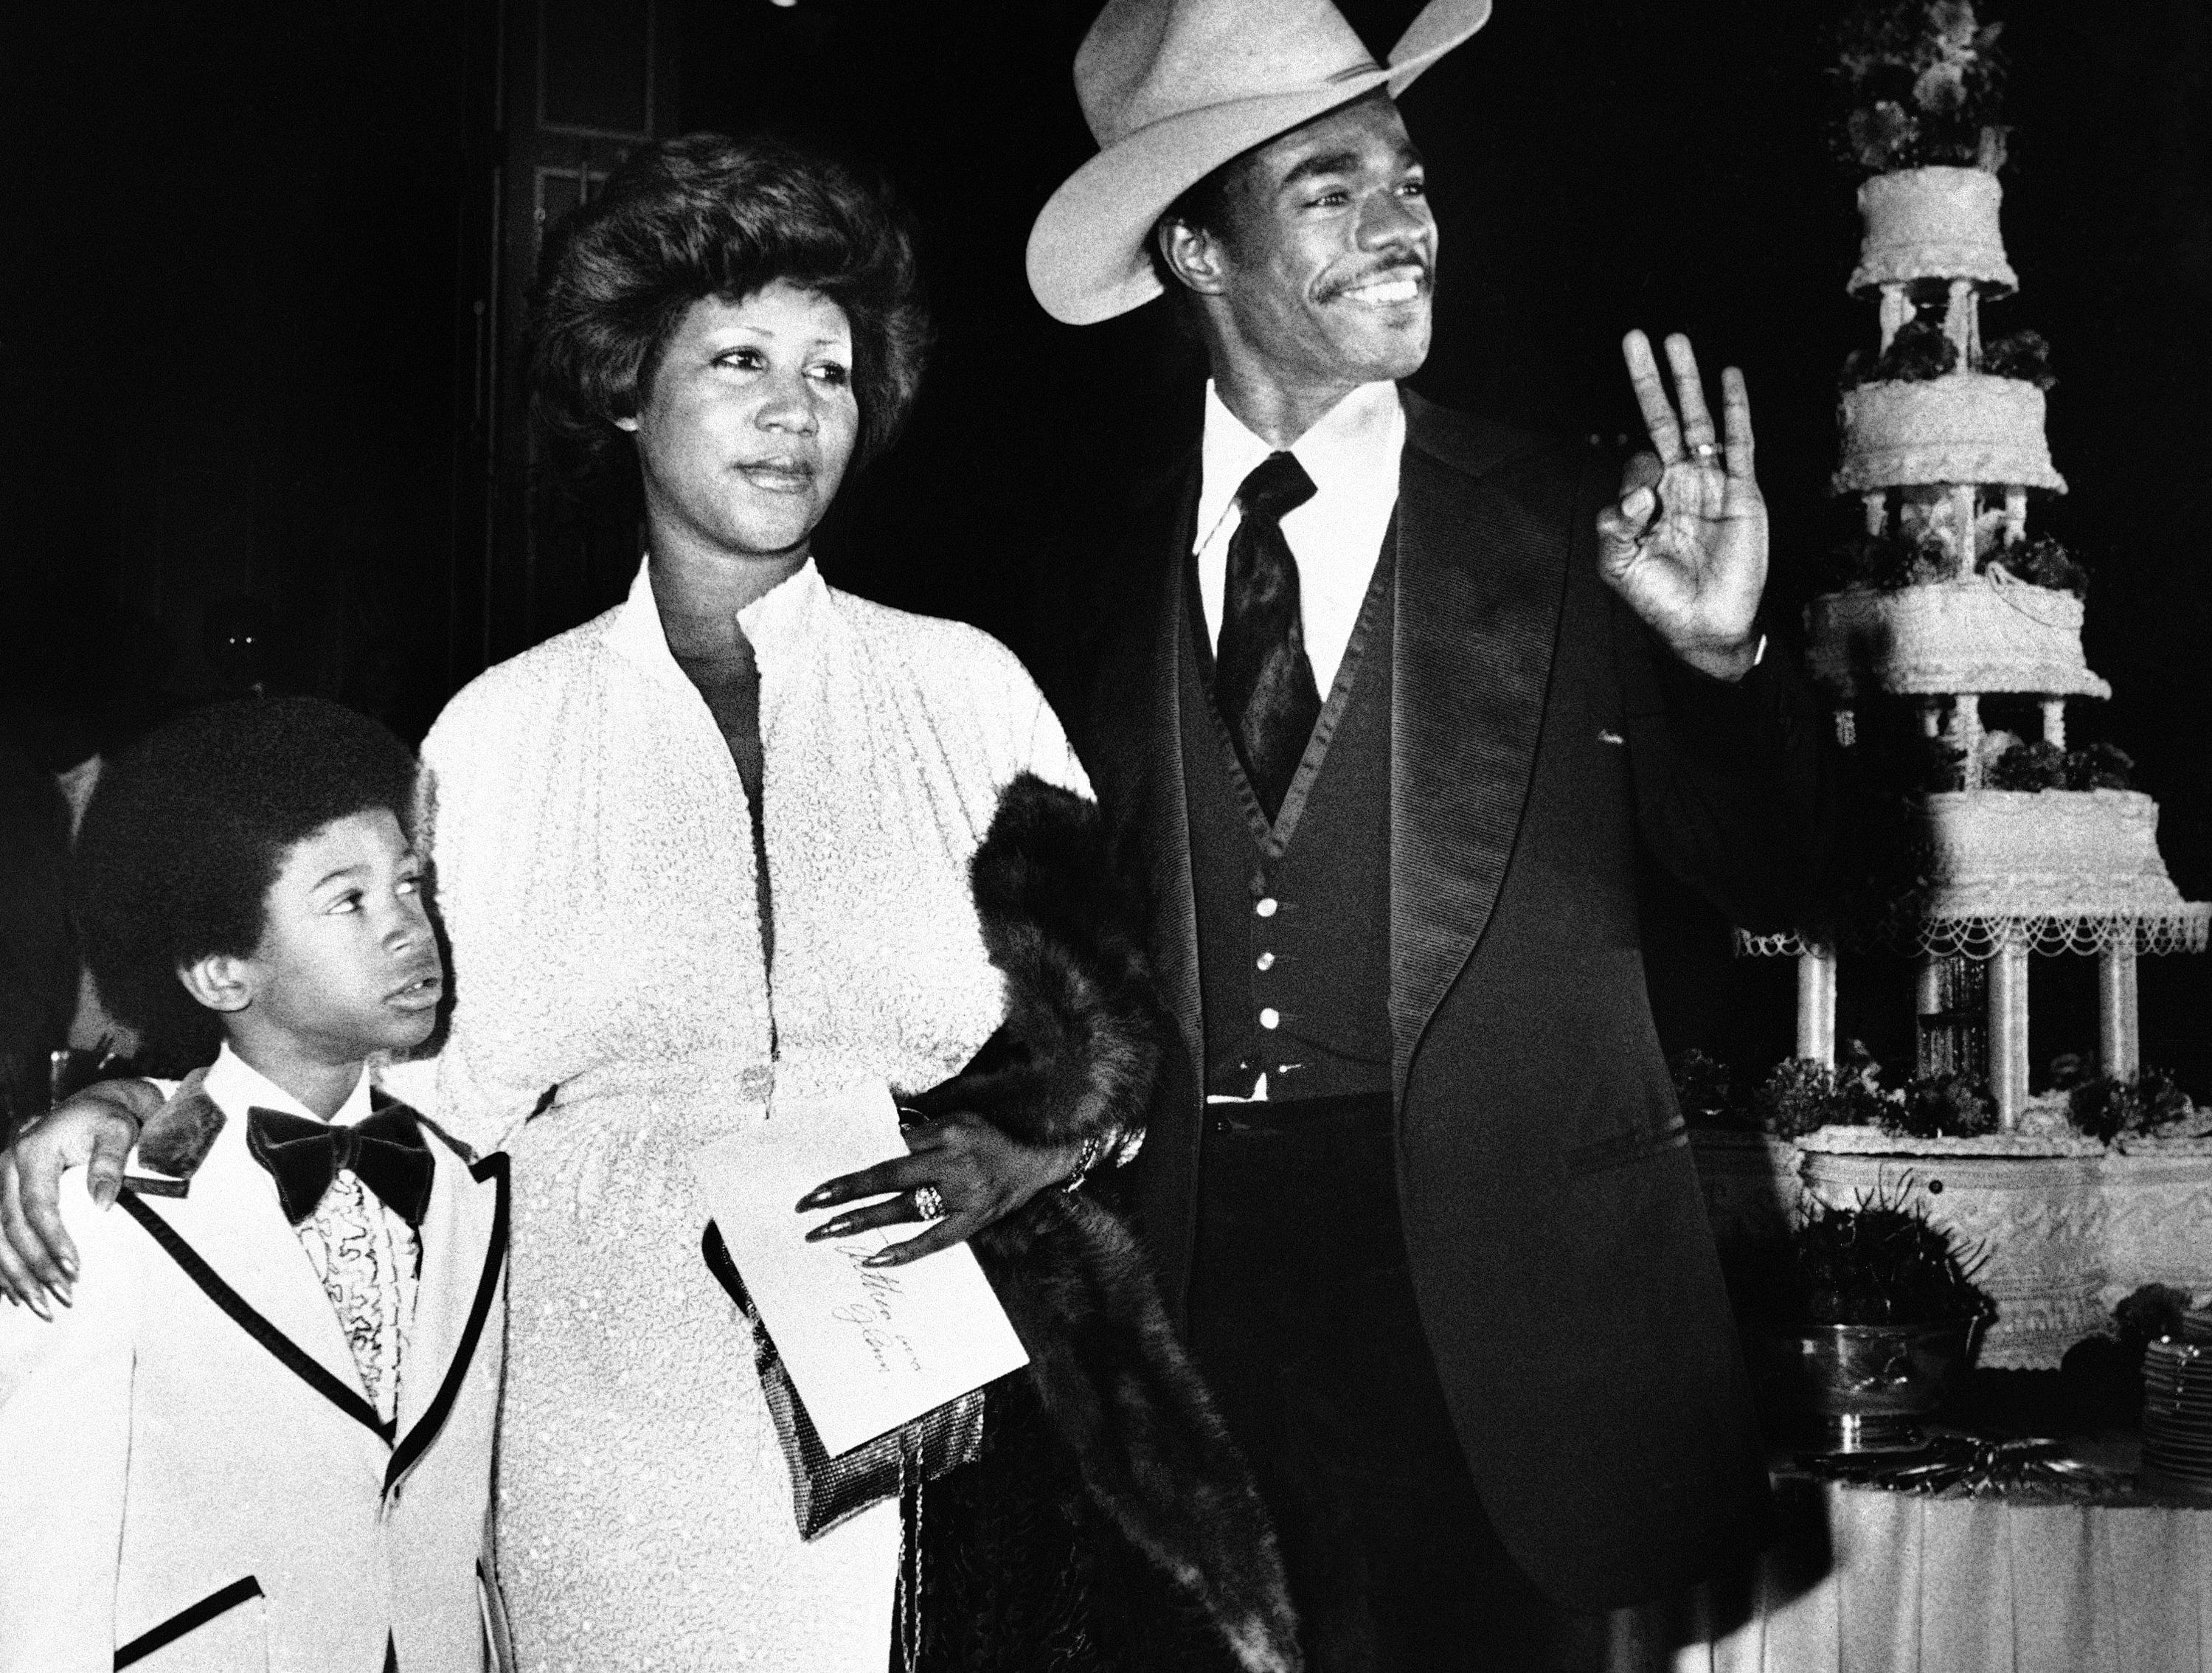 Aretha Franklin and her new husband, Glen Turman, arrive at a Los Angeles hotel, April 17, 1978 for their wedding reception. Turman signals his okay and pleasure at the reception as Kecalf (cq) 8, Aretha's son by a previous marriage looks on. The couple married recently,had planned a reception at her Beverly Hills home on Saturday but the party was rained out, and moved to the hotel for the Sunday party. (AP Photo/Doug Pizac)